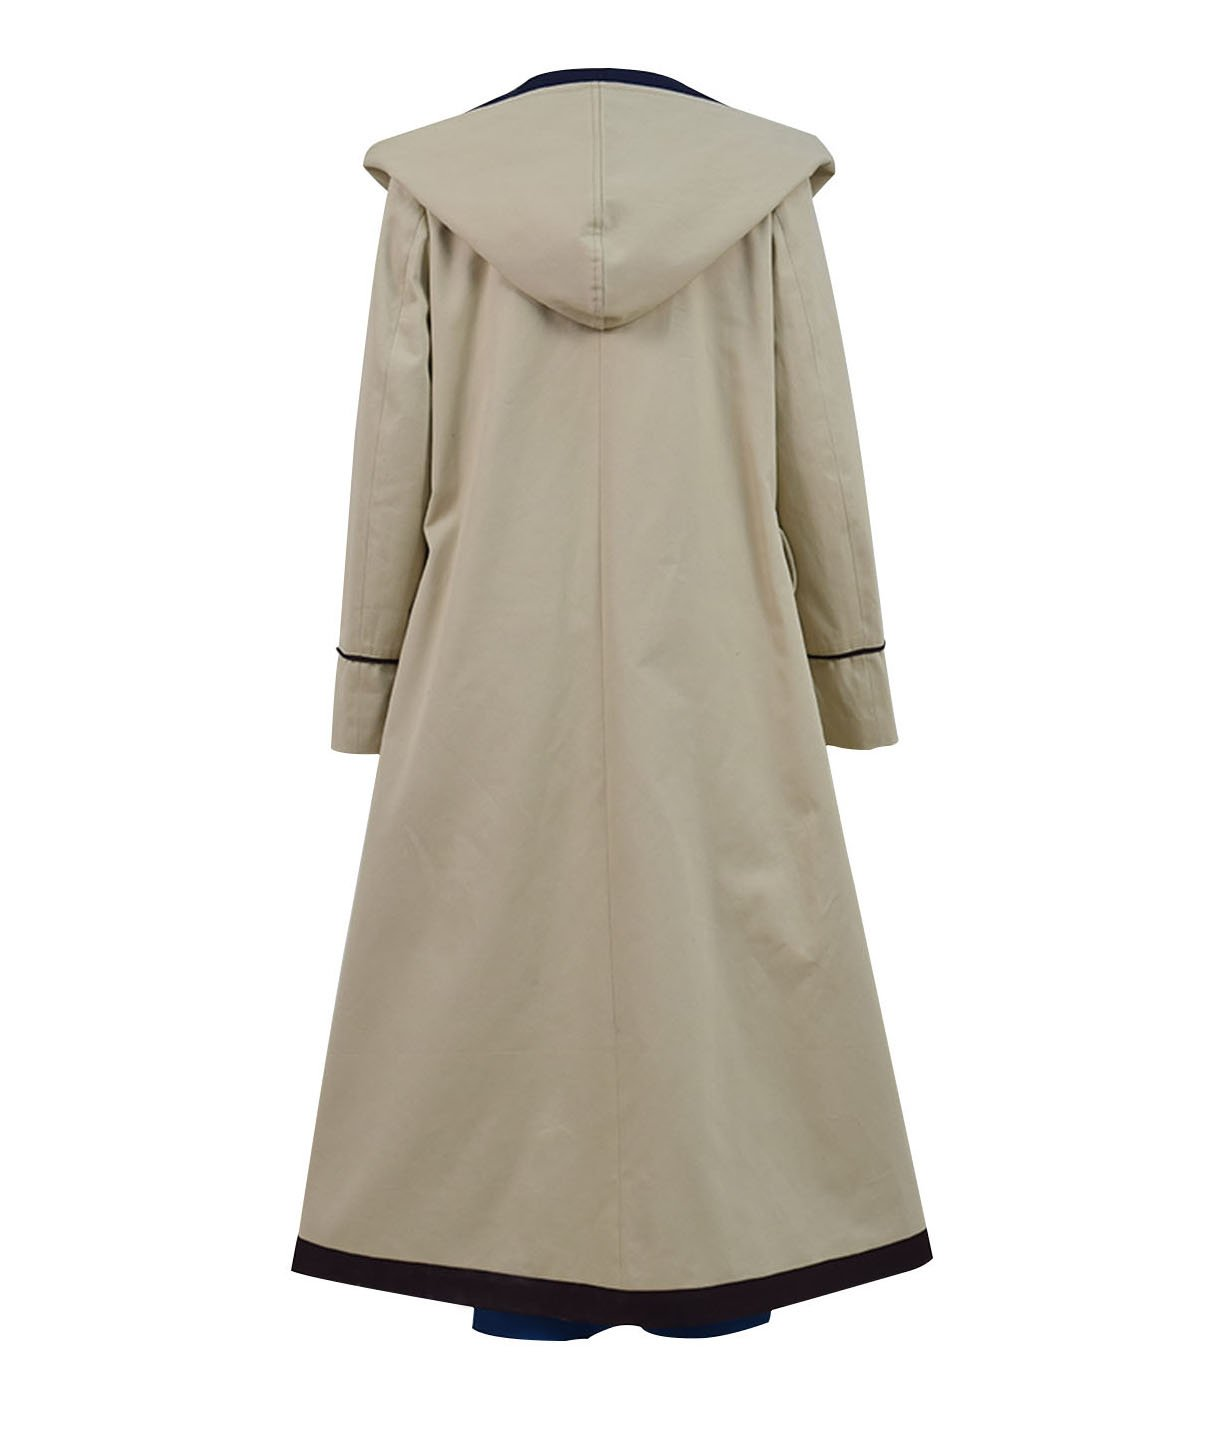 Very Last Shop Classic Sci-Fi TV Series 13th Doctor Costume Women Beige Trench Coat Overcoat (Beige Full Set, US Women-XXL) by Very Last Shop (Image #4)